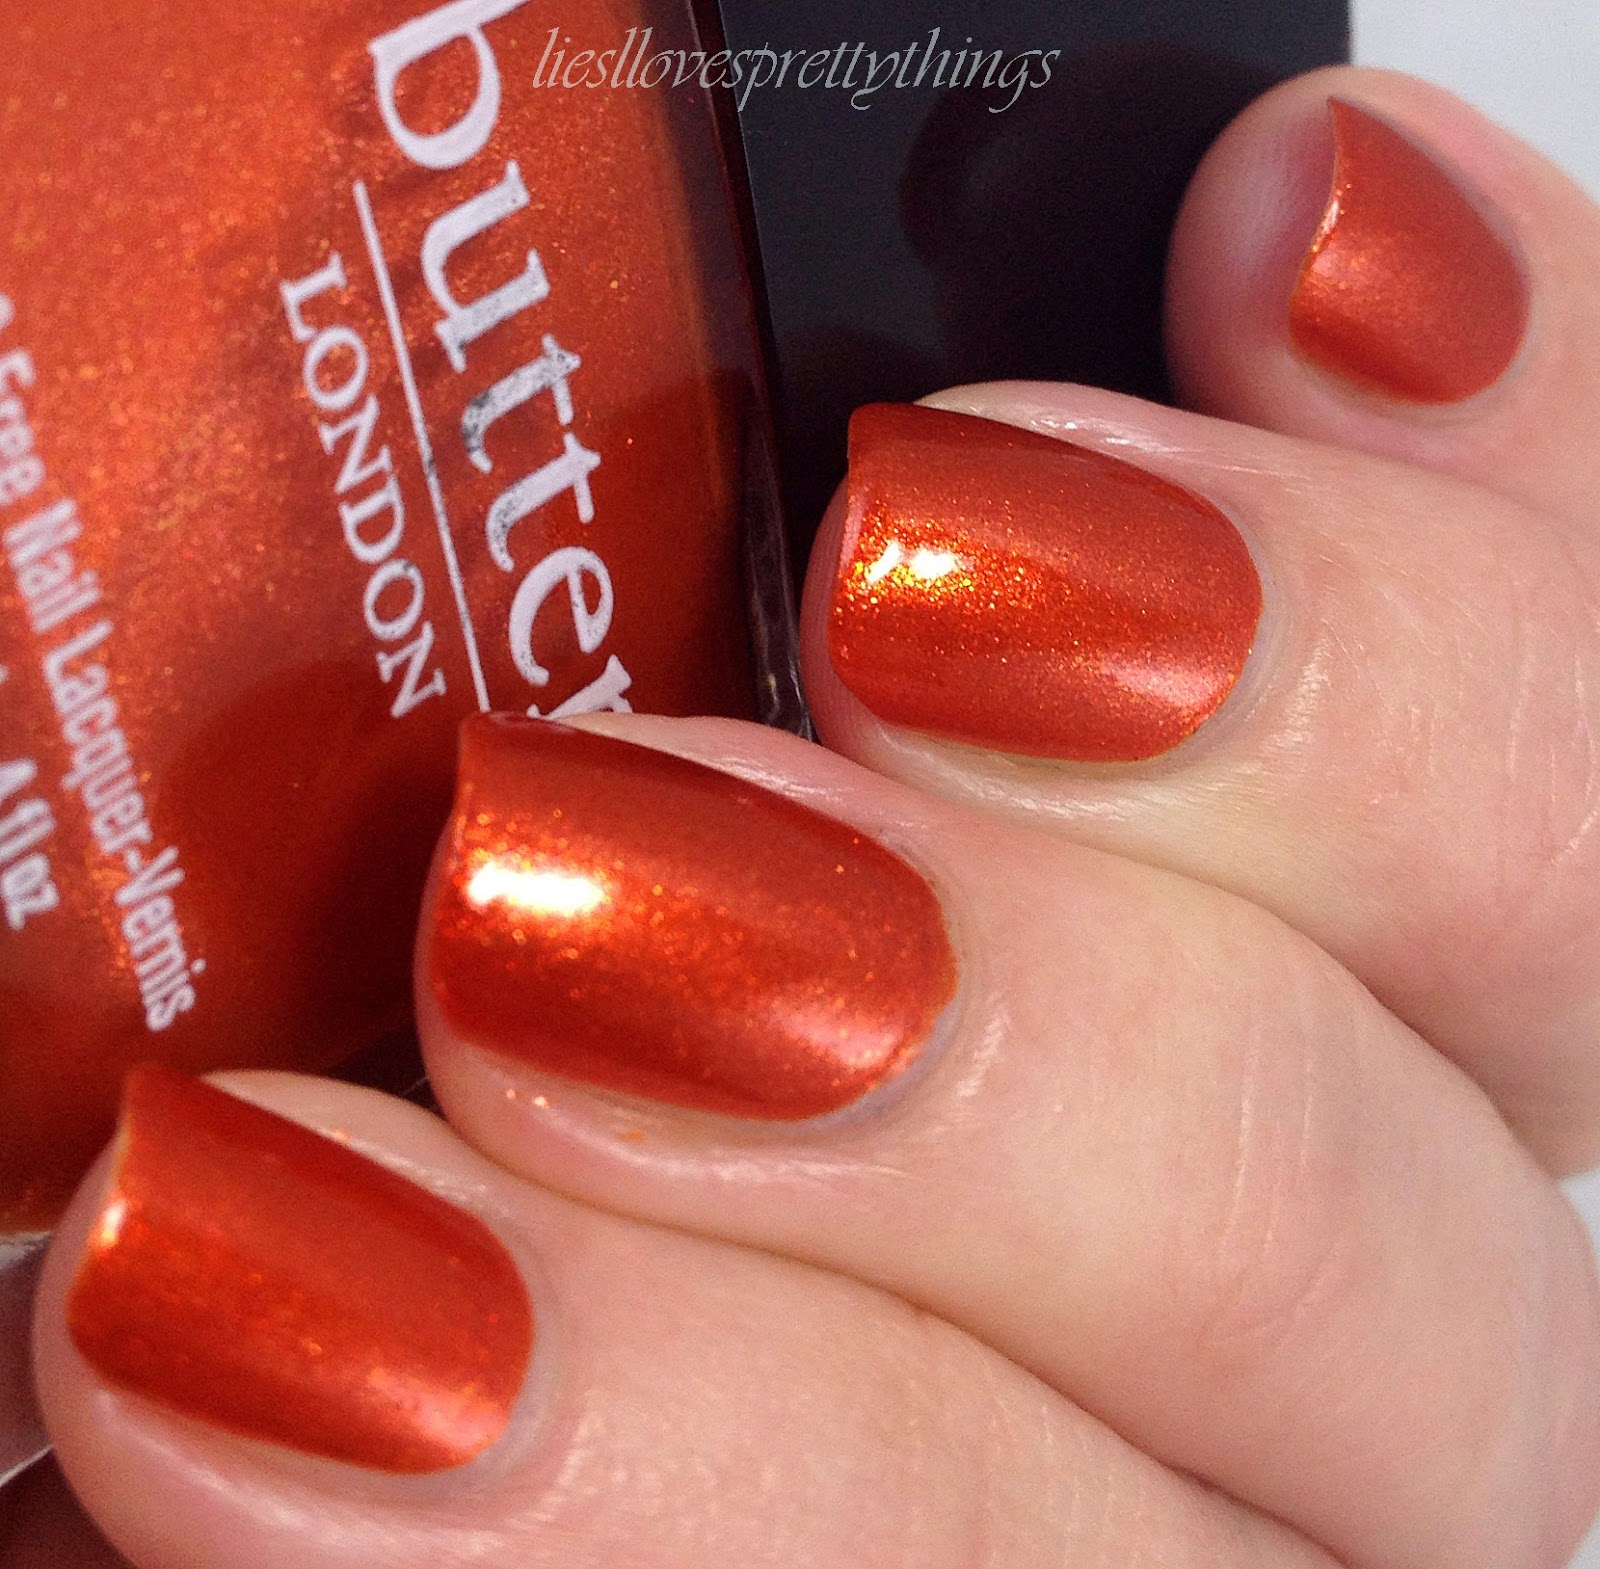 Butter London Sunbaker